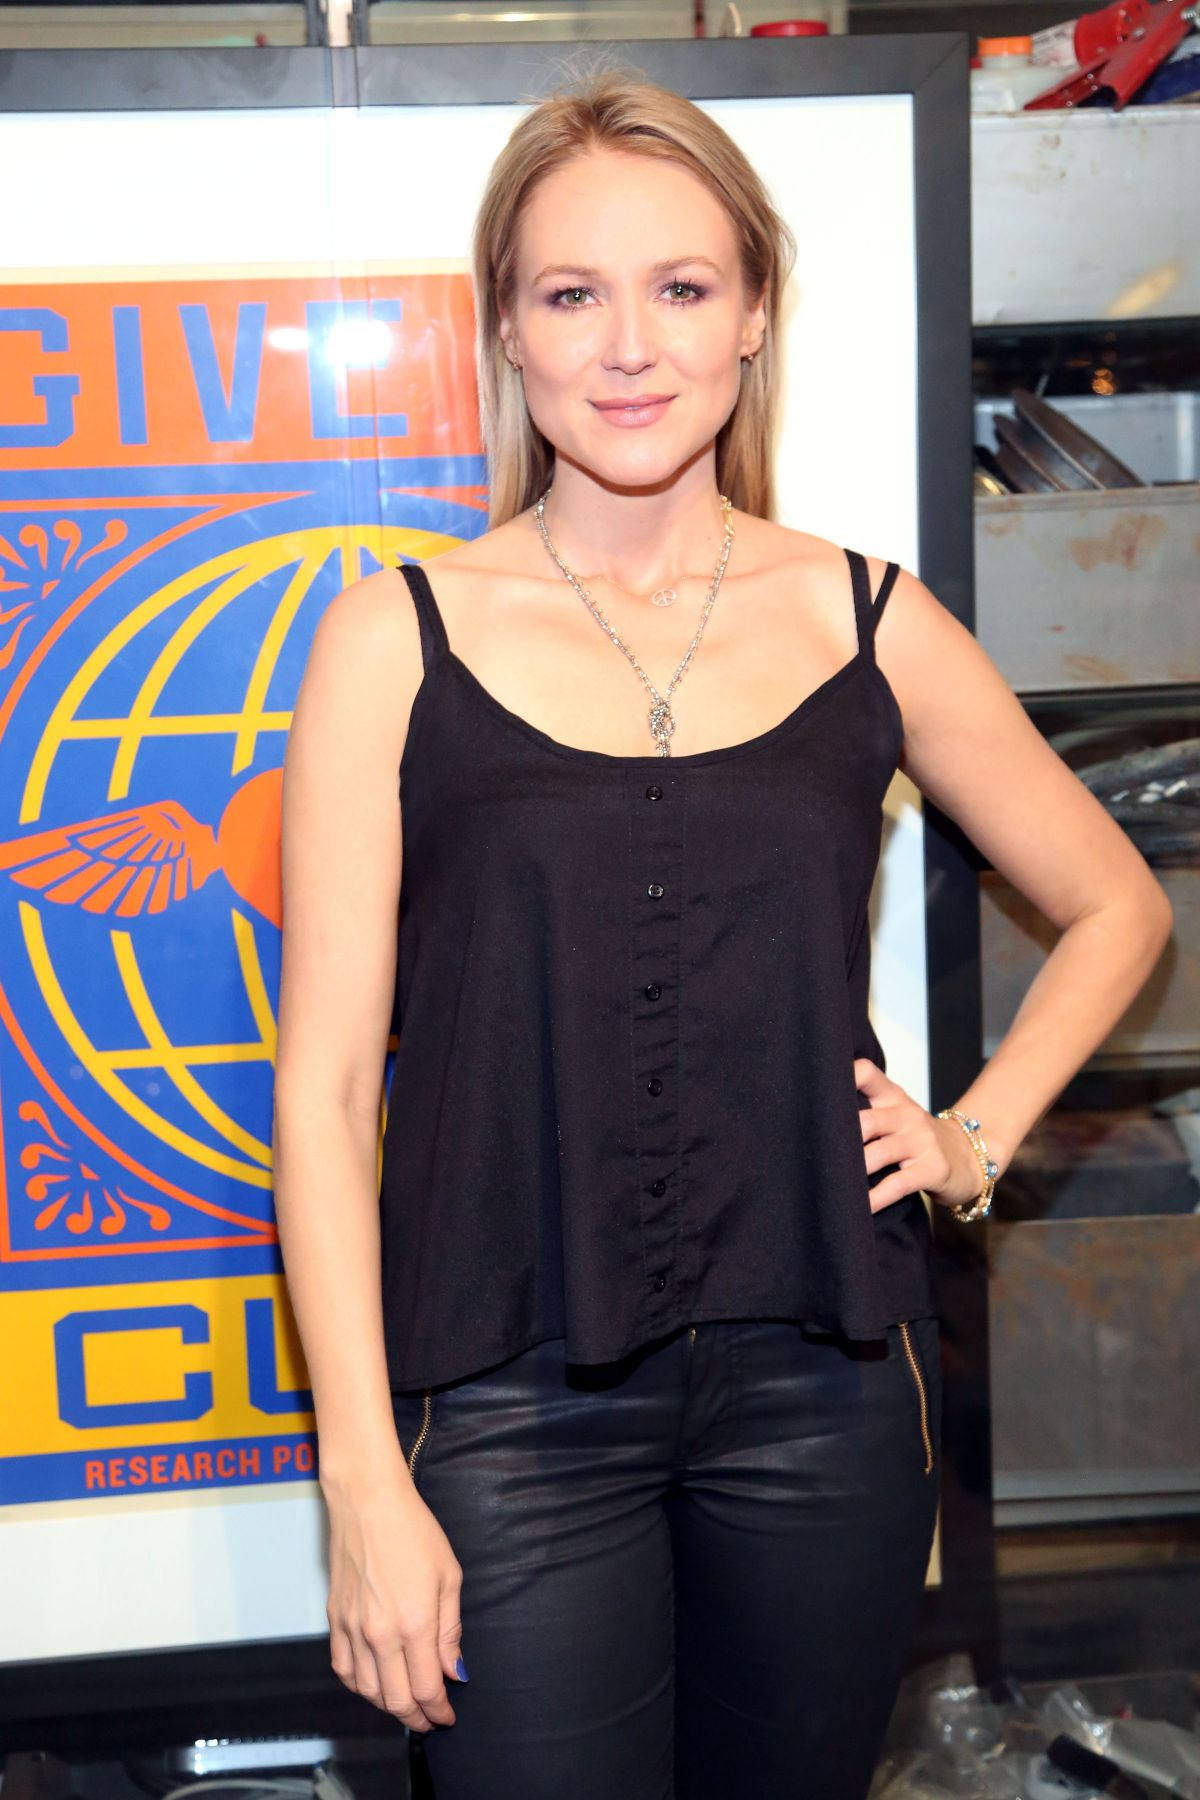 JEWEL at Give to Cure Founders in New York